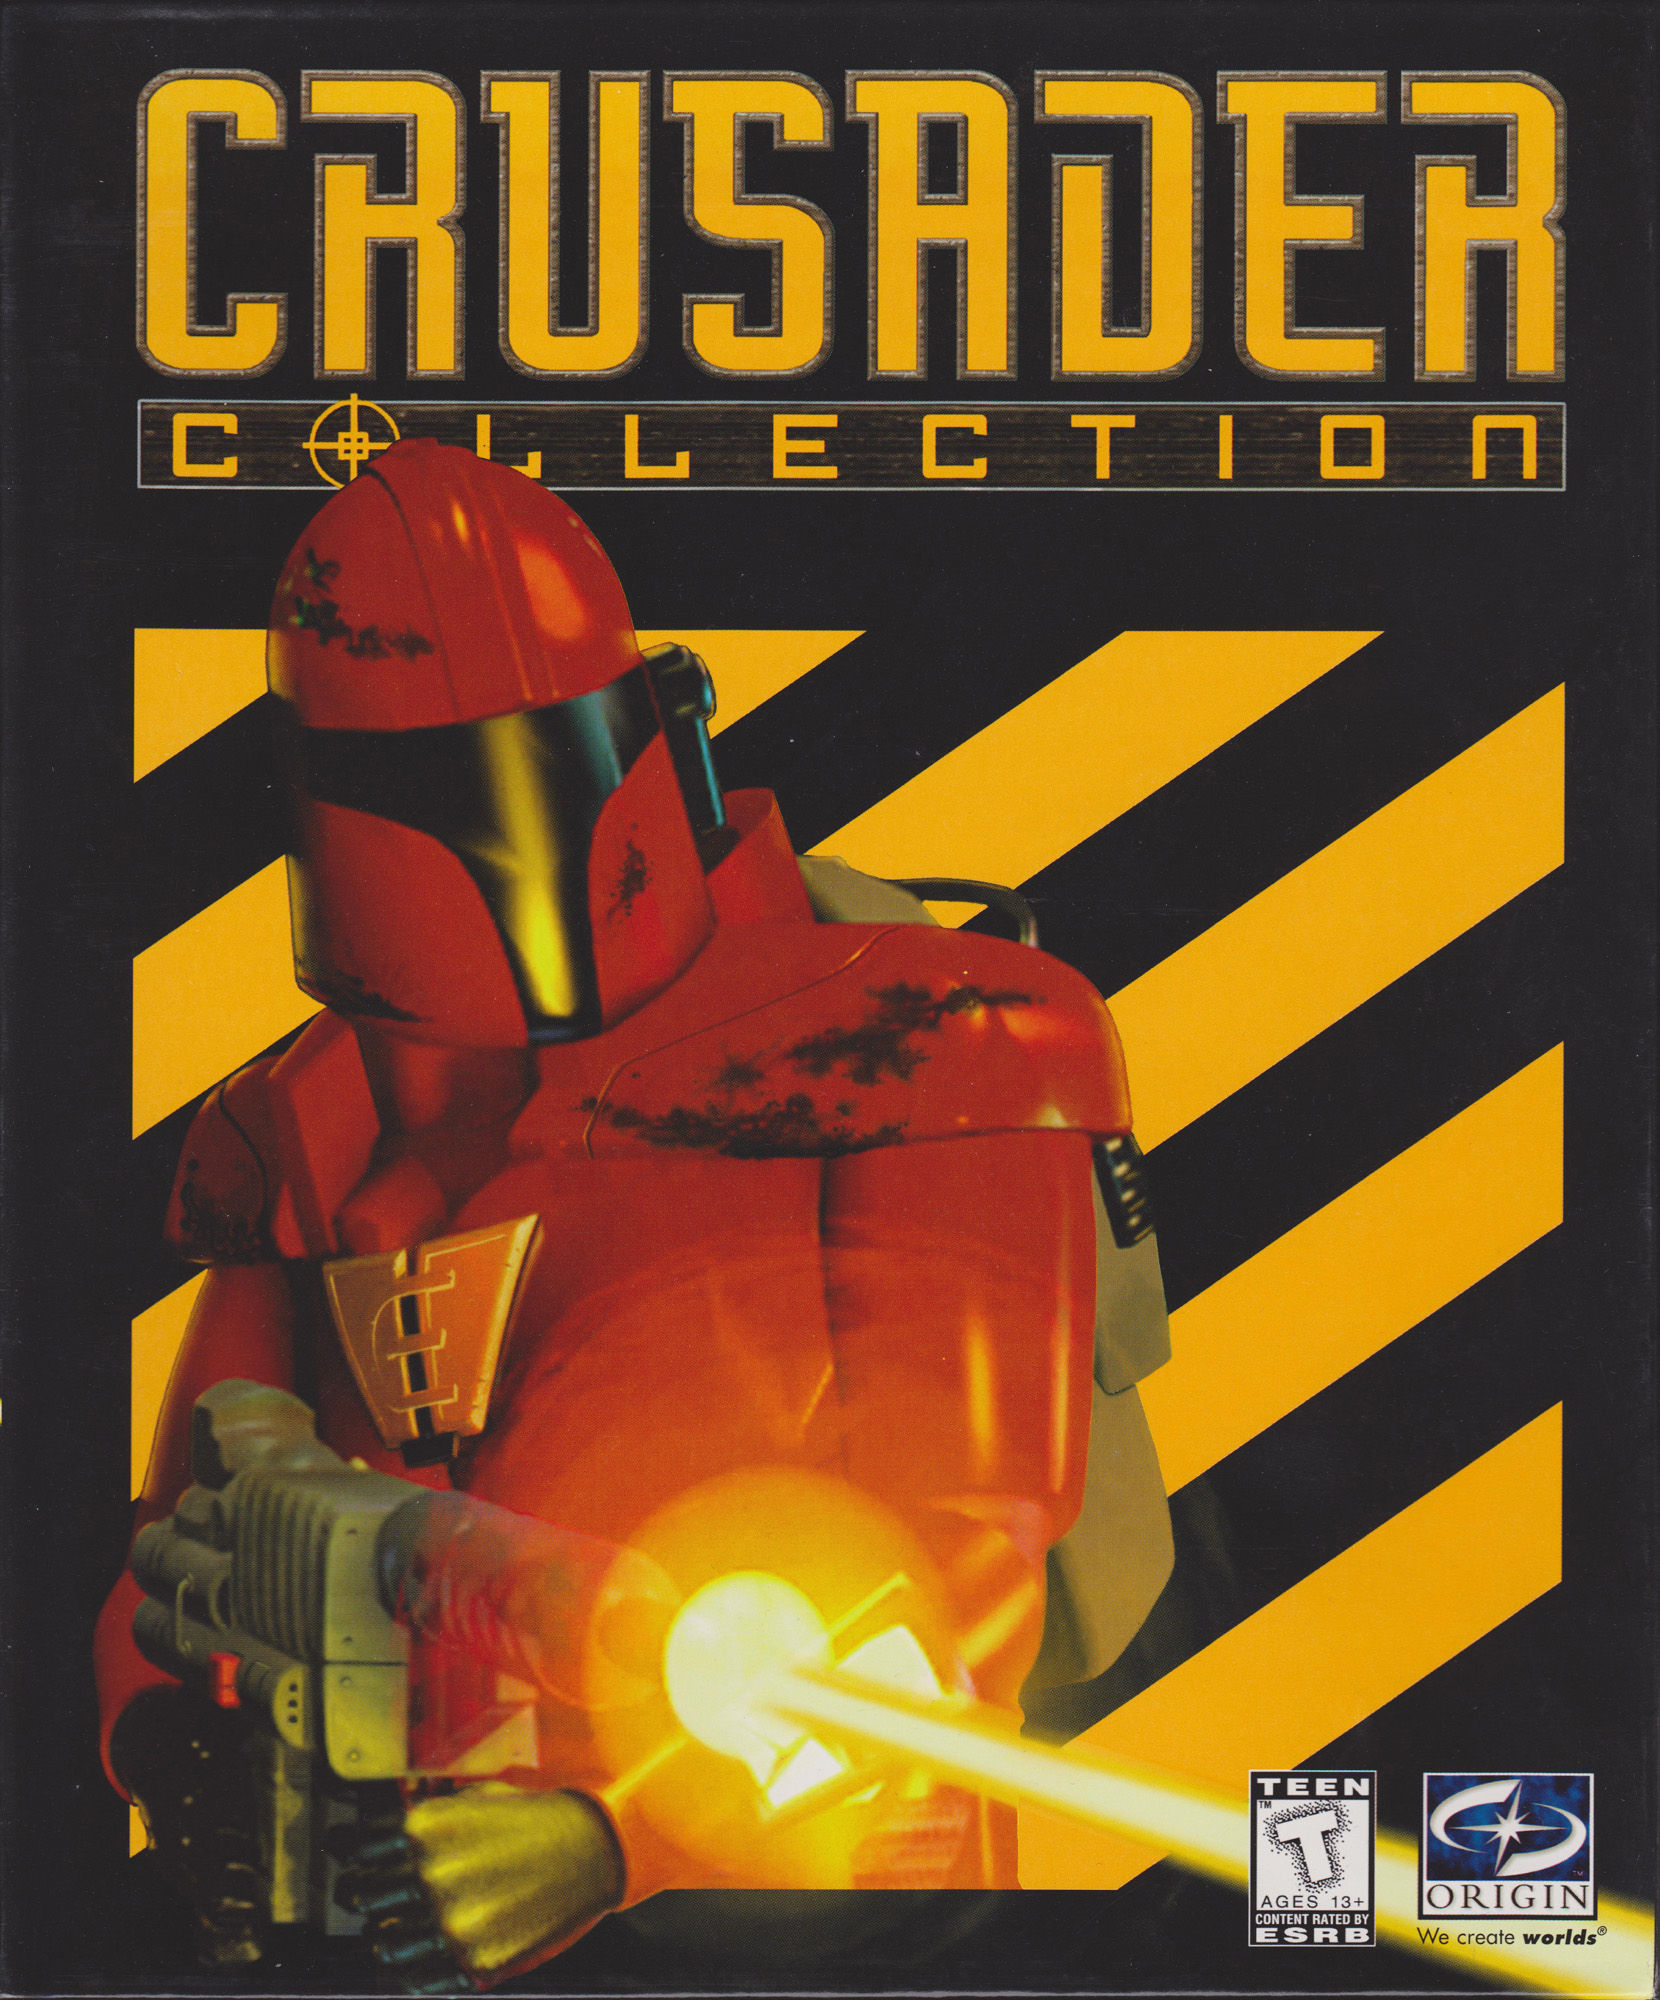 image : /images_abandonware/compilations/169Crusader Collection - Front.jpg